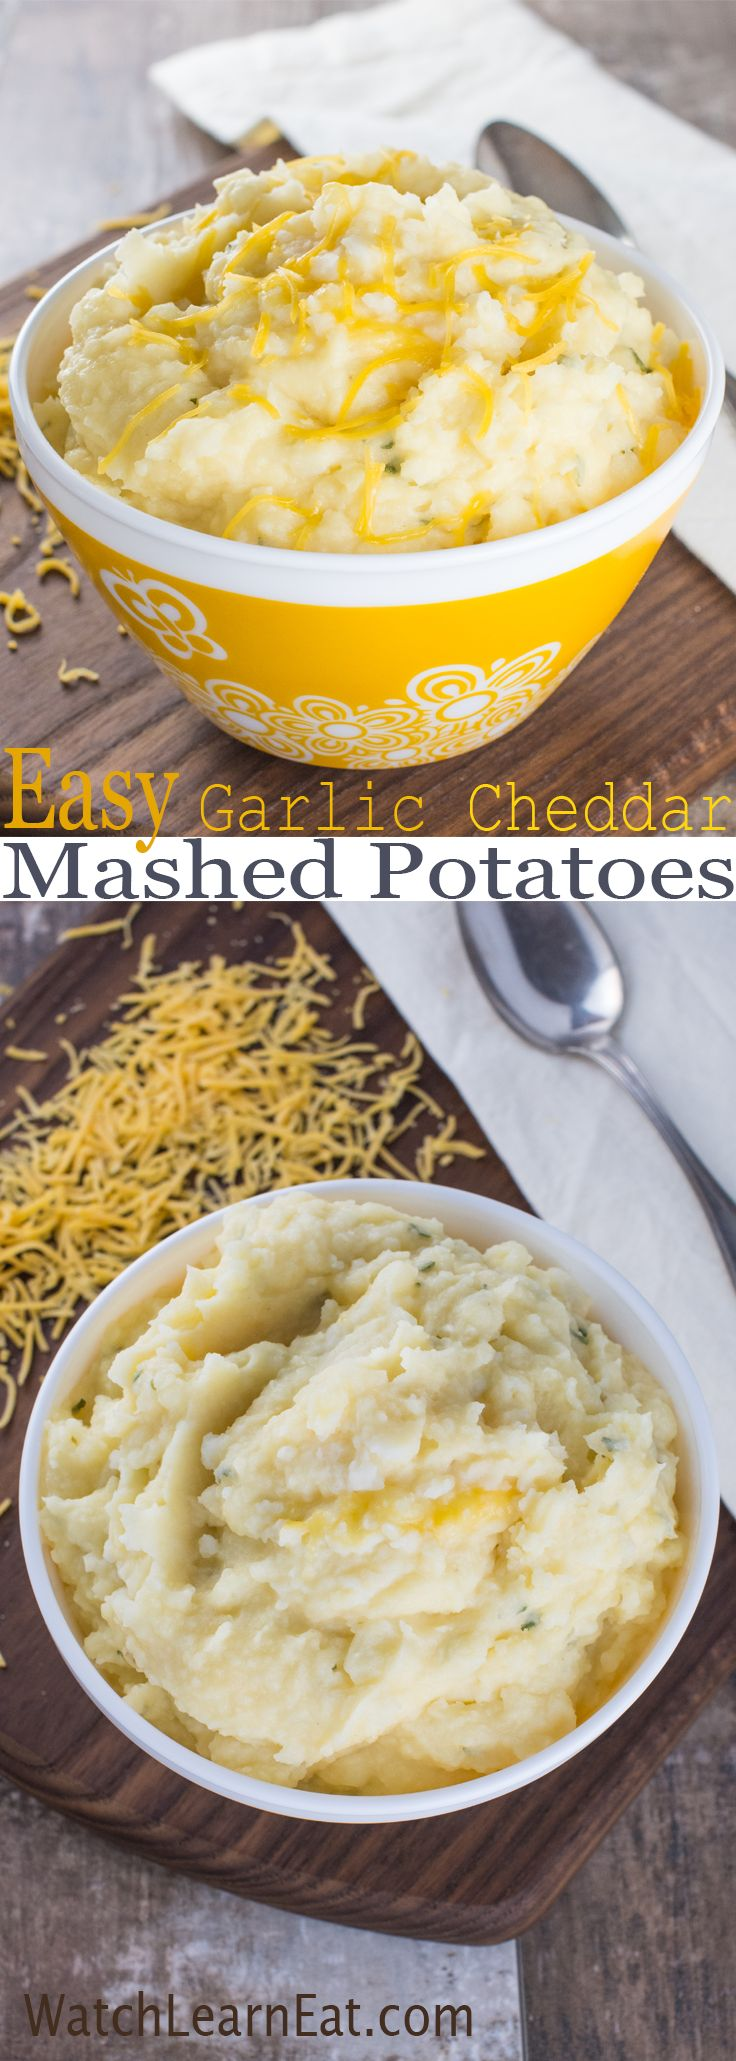 These Easy Garlic Cheddar Mashed Potatoes are garlicky, cheesy and super simple to make - a perfect side dish for busy nights.